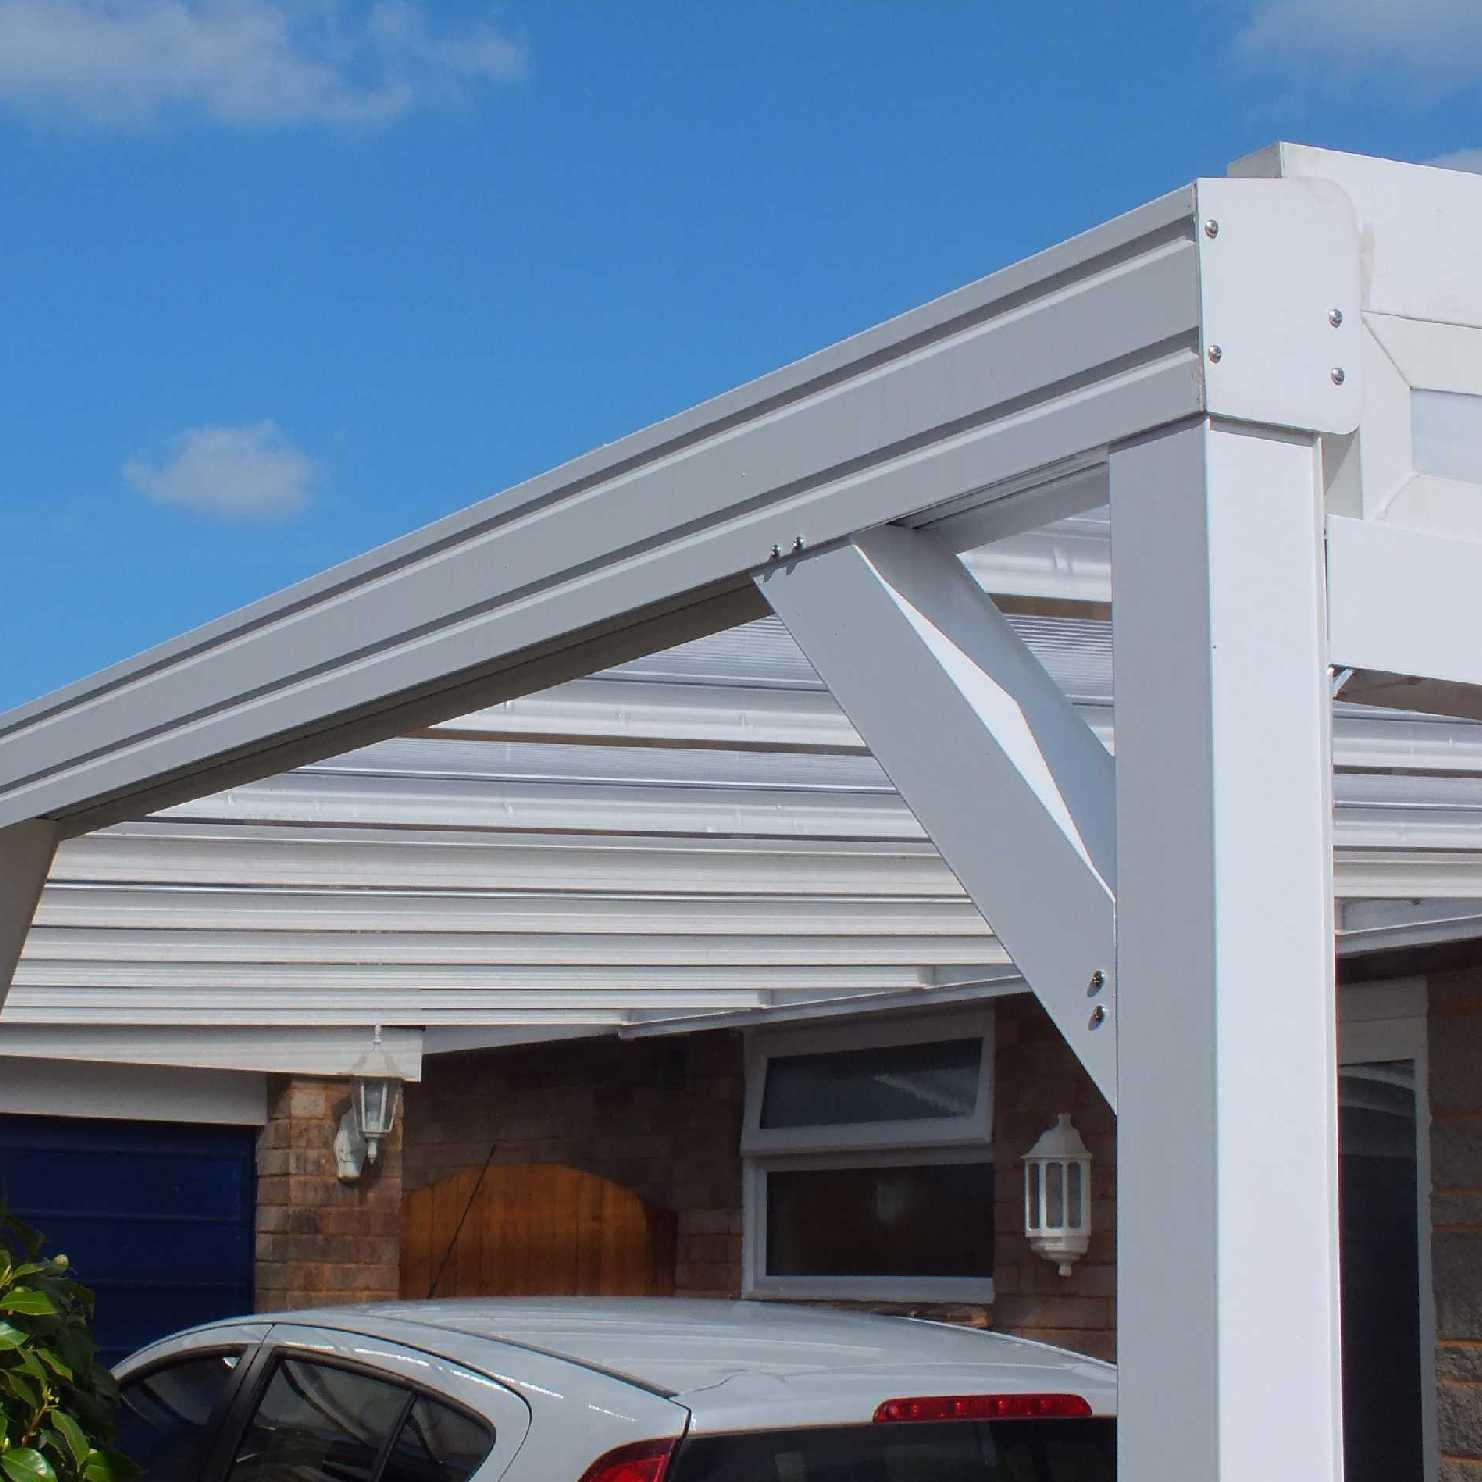 Buy Omega Smart Lean-To Canopy with 16mm Polycarbonate Glazing - 5.2m (W) x 1.5m (P), (3) Supporting Posts online today